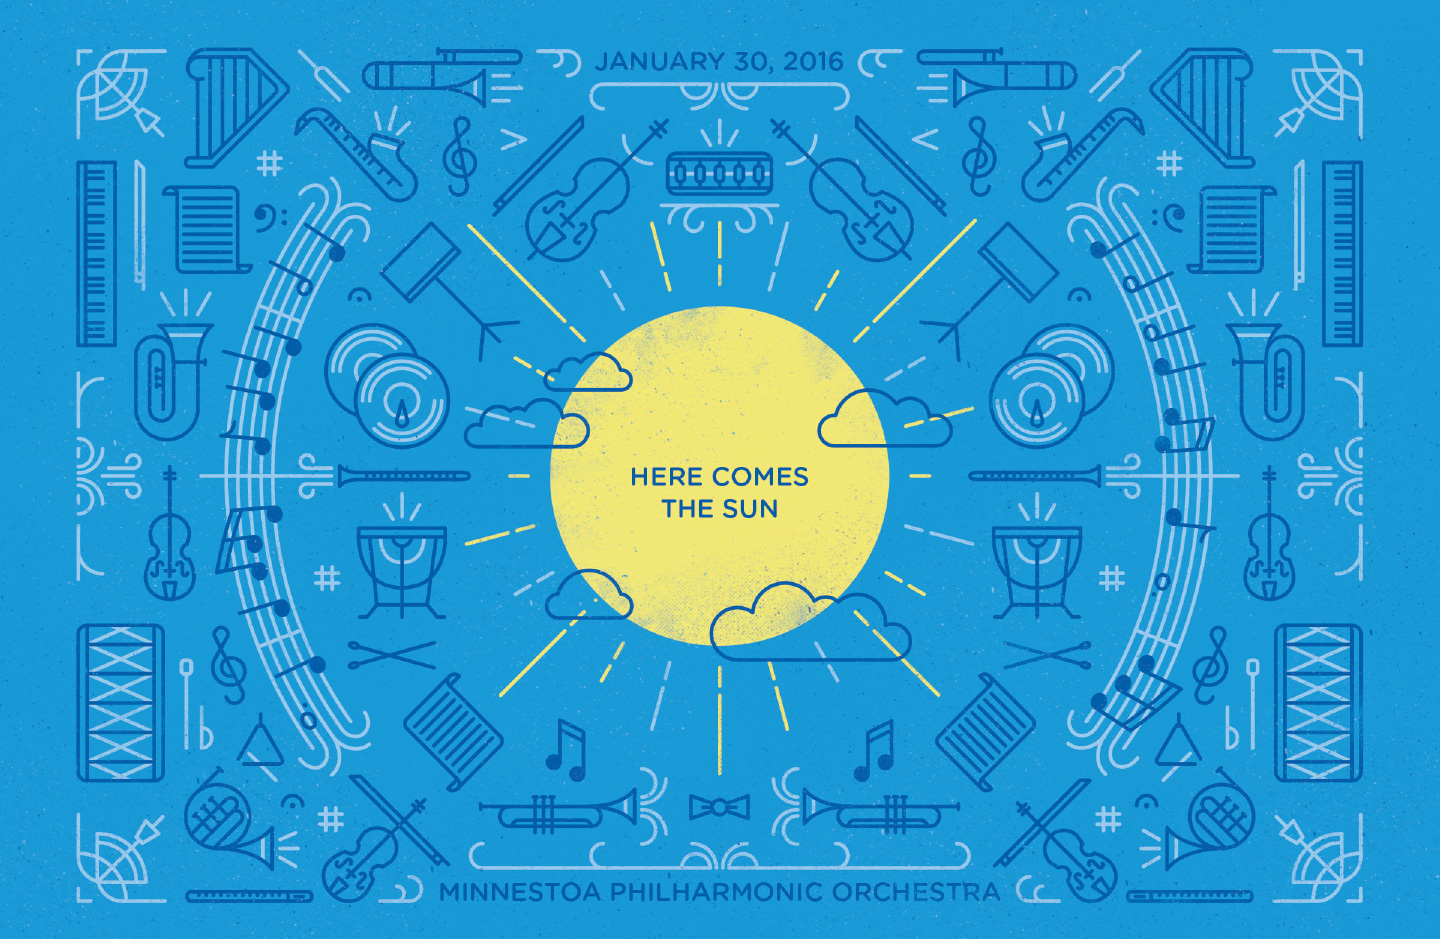 Minnesota Philharmonic Orchestra 2016 Concert Series Here Comes the Sun Poster